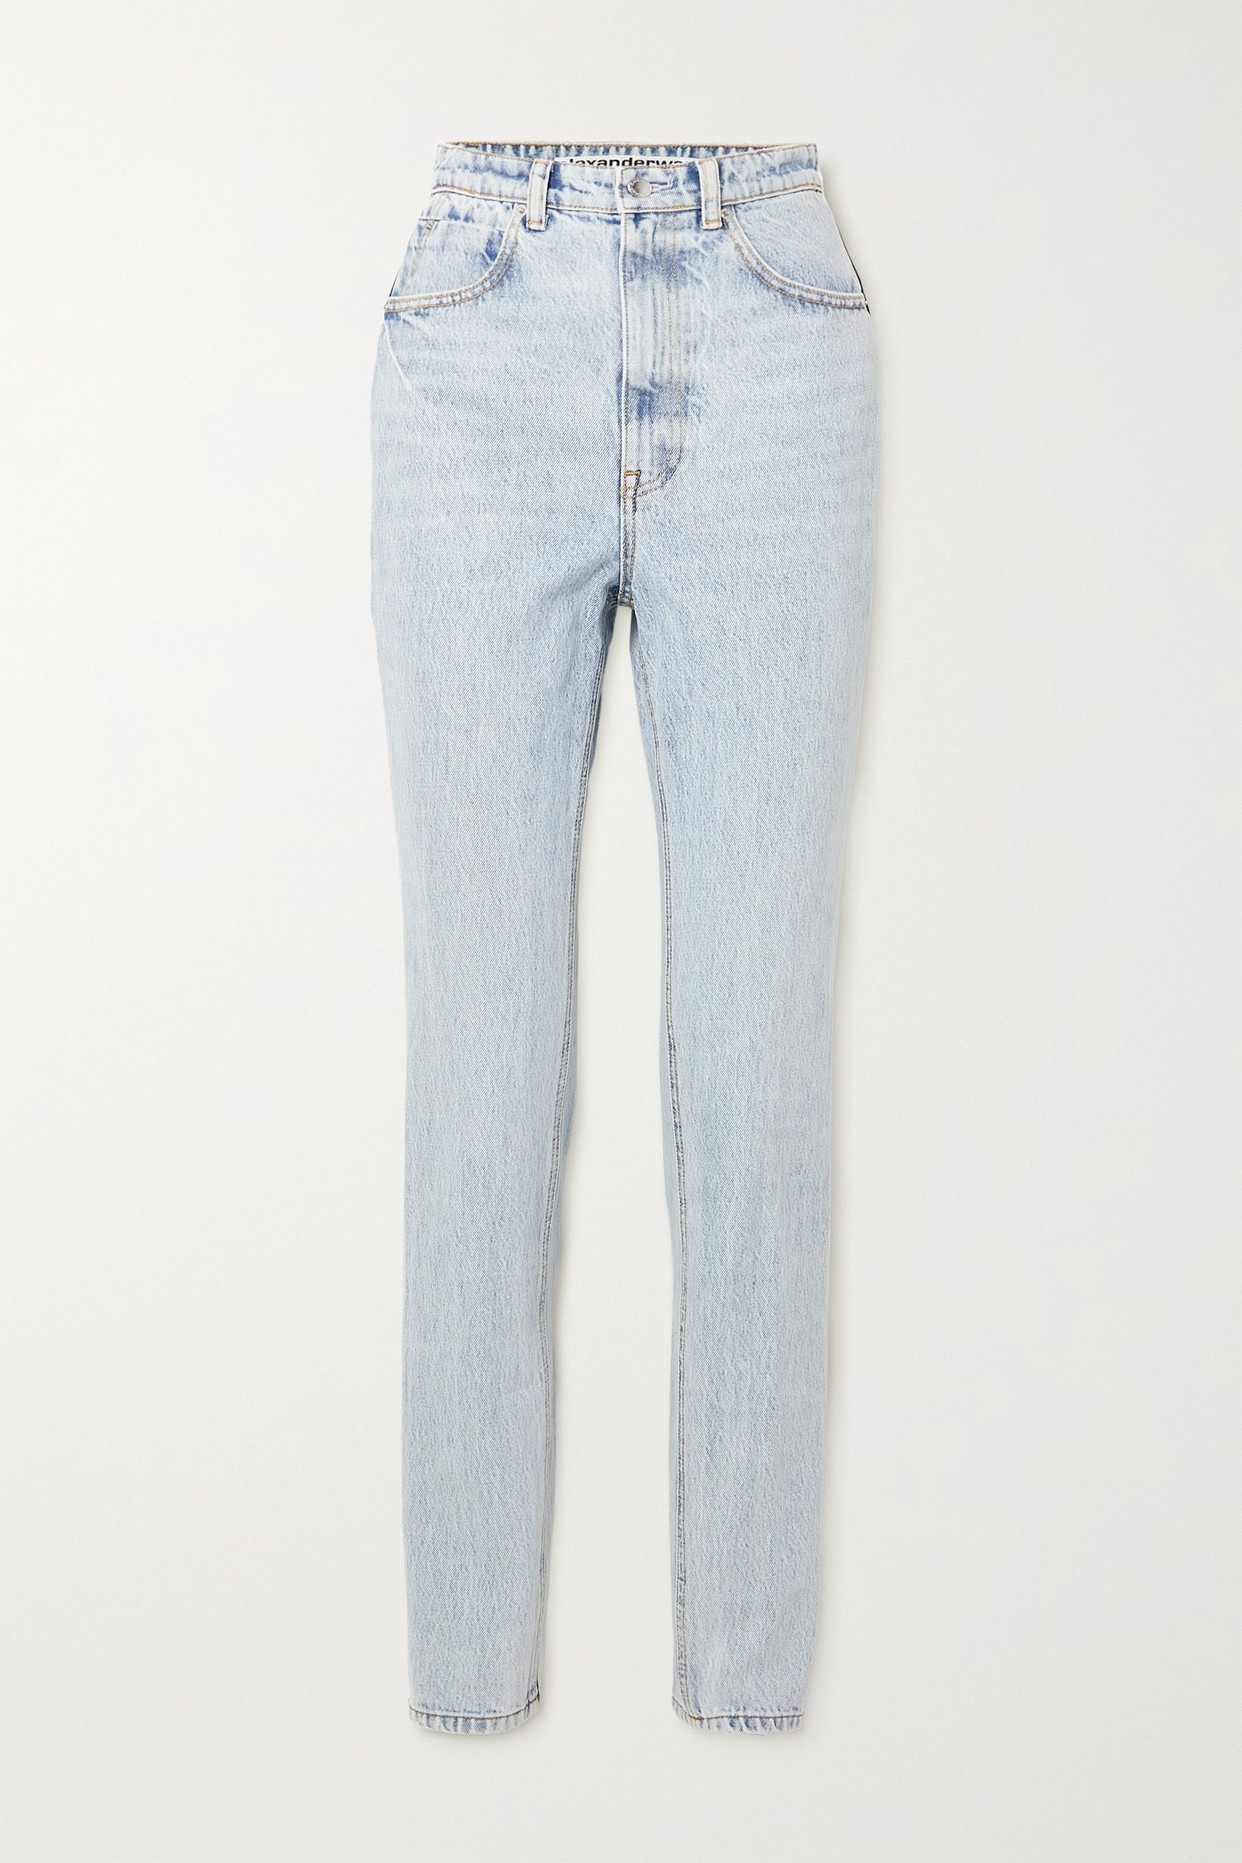 ALEXANDER WANG - Satin-trimmed High-rise Tapered Jeans - Blue - 29